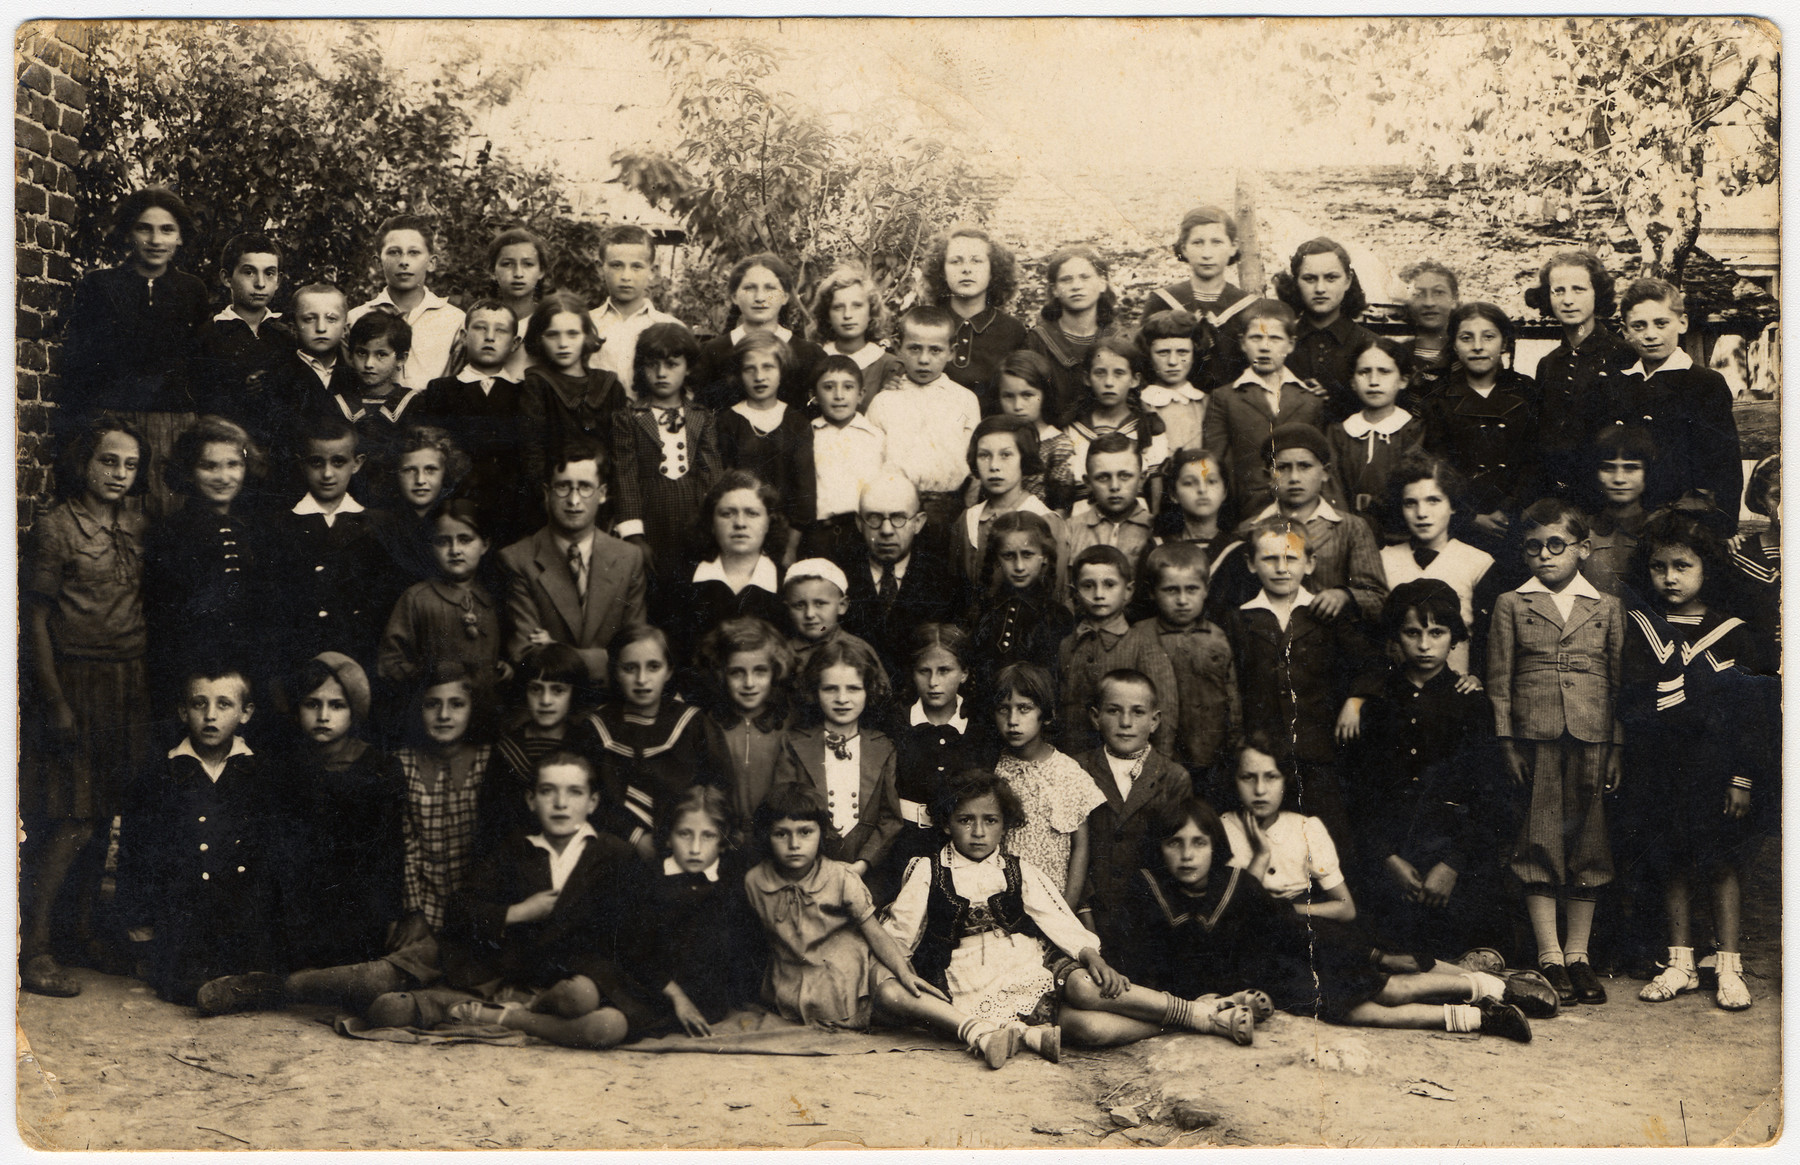 Group portrait of the children and teachers in the Tarbut school in Belzyce.  Sara Wiener is pictured in the third row, fourth from the left.  Her sister Dina is pictured in the second row, sixth from the left.  The fourth person from the left, top row is Esther Lajwand,  The second person from the left, fourth row is Ethel Lajwand, sister to Esther.